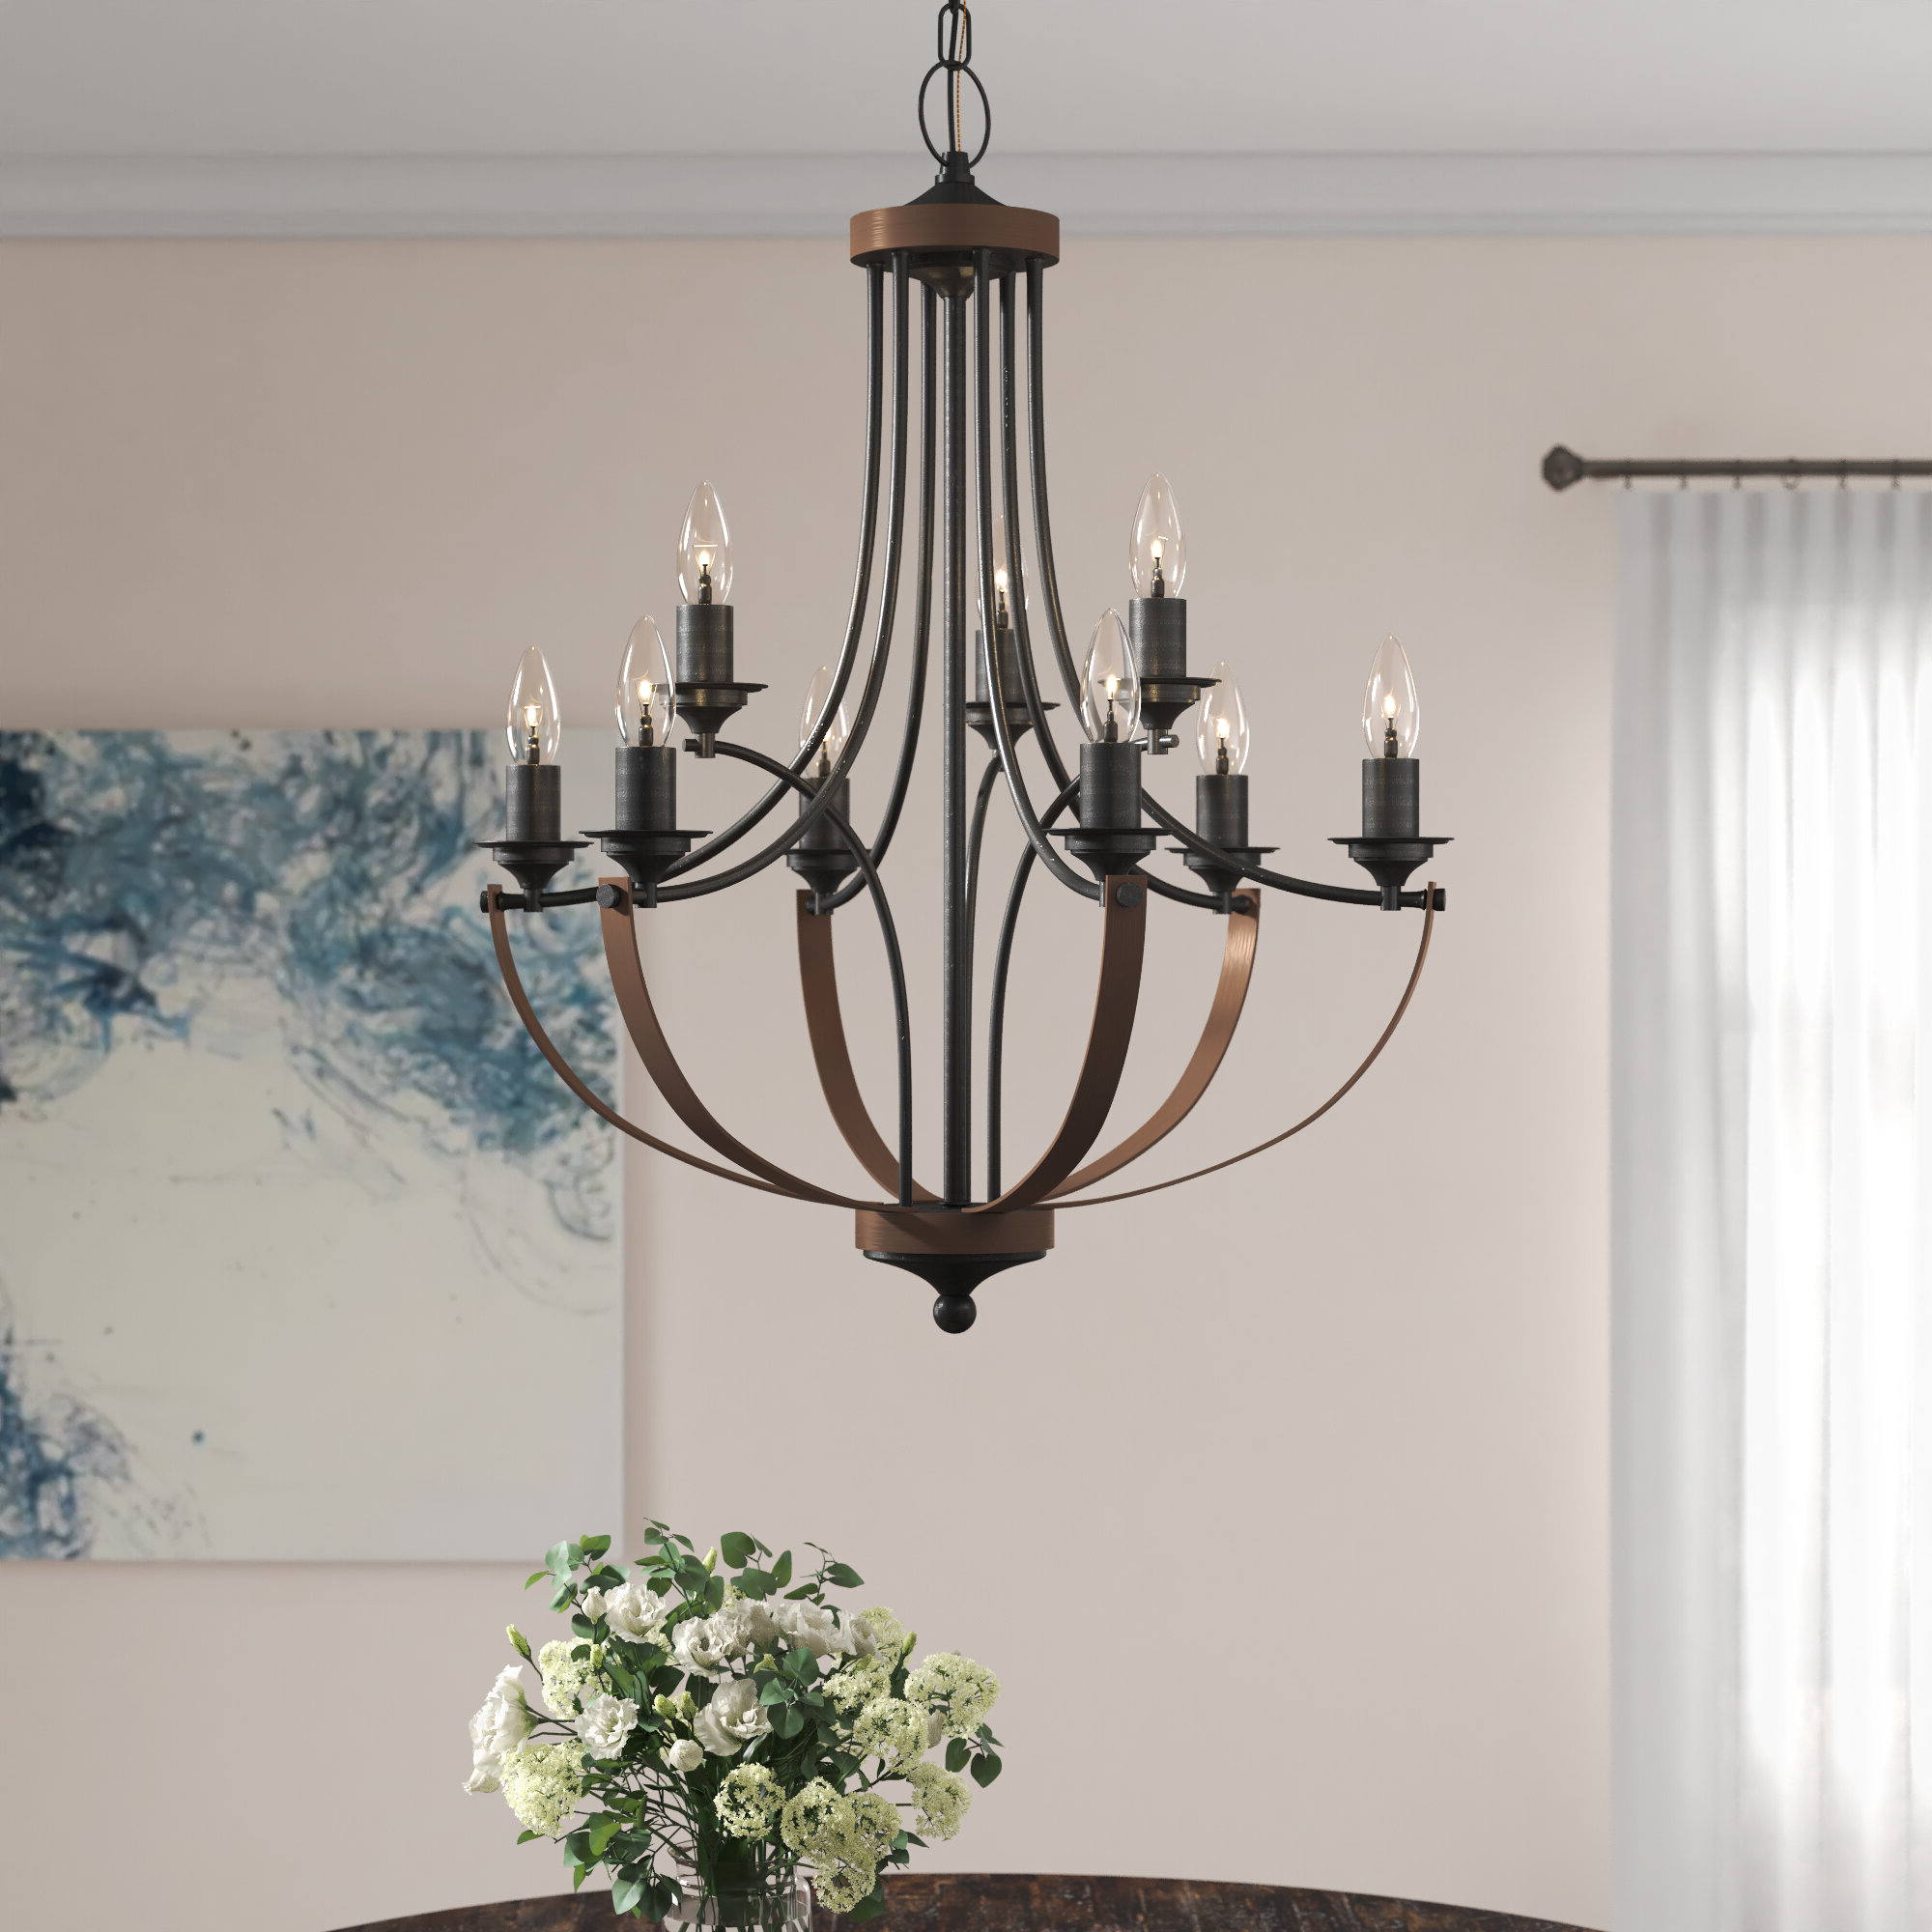 Giverny 9 Light Candle Style Chandeliers Intended For Most Popular Camilla 9 Light Candle Style Chandelier (Gallery 5 of 20)